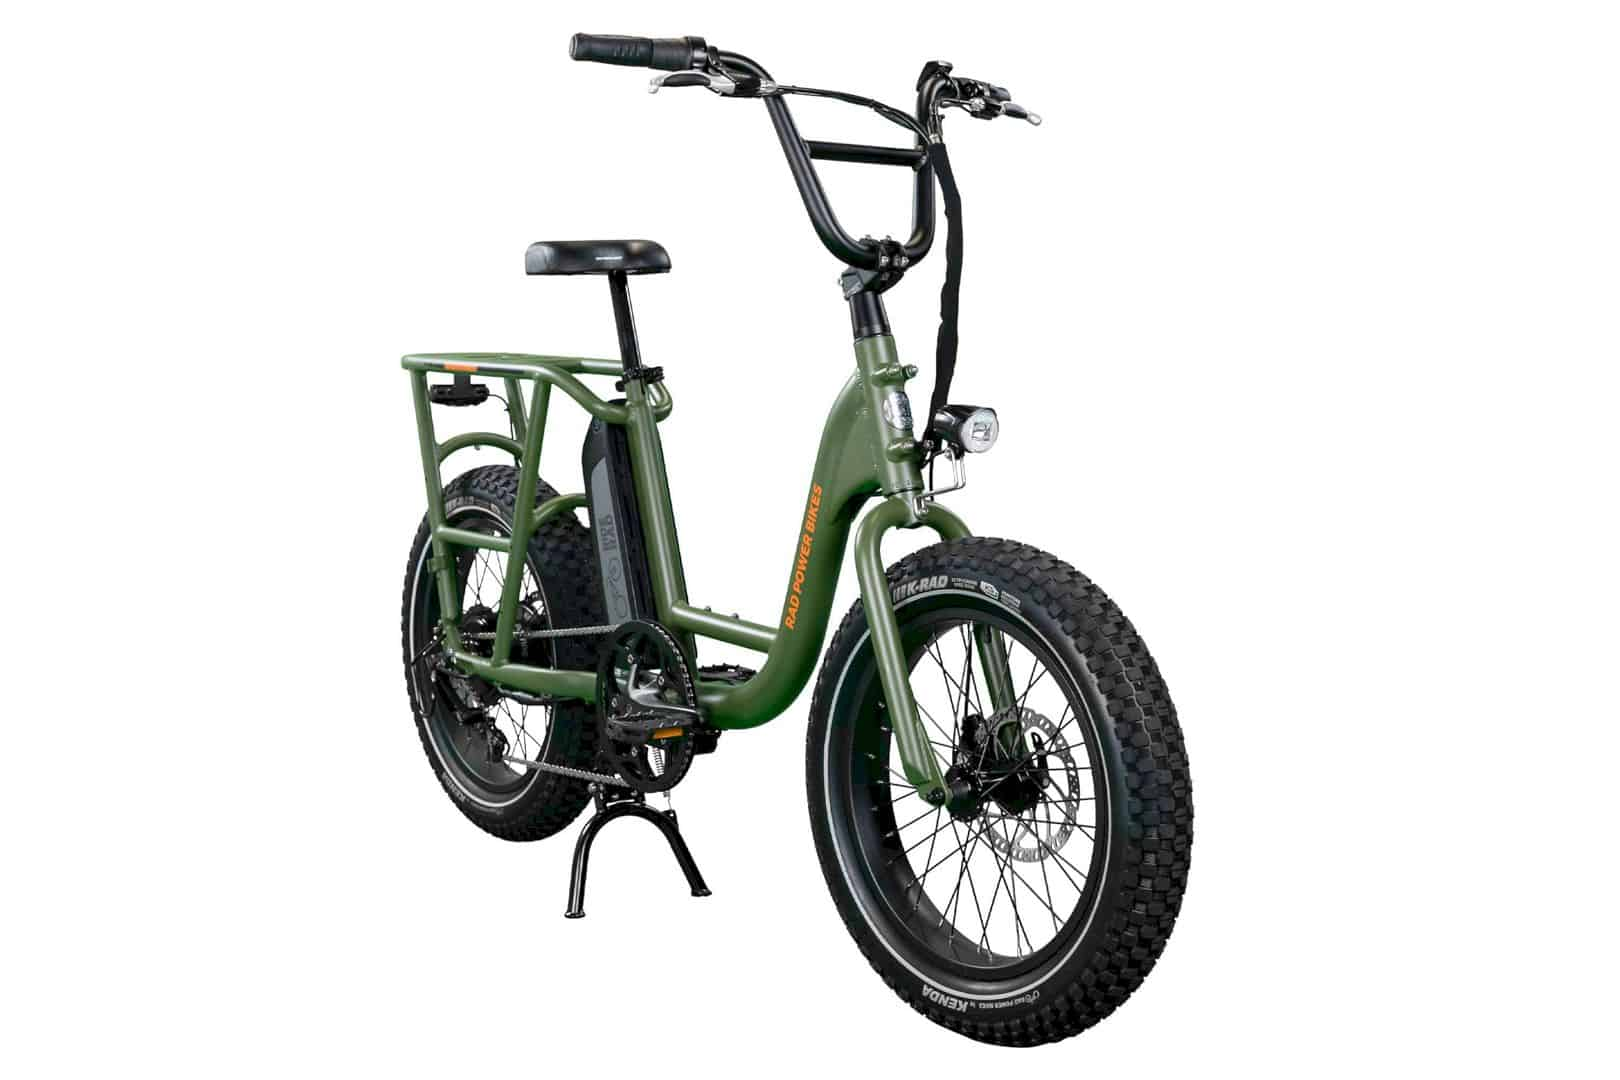 RadRunner Electric Utility Bike 3